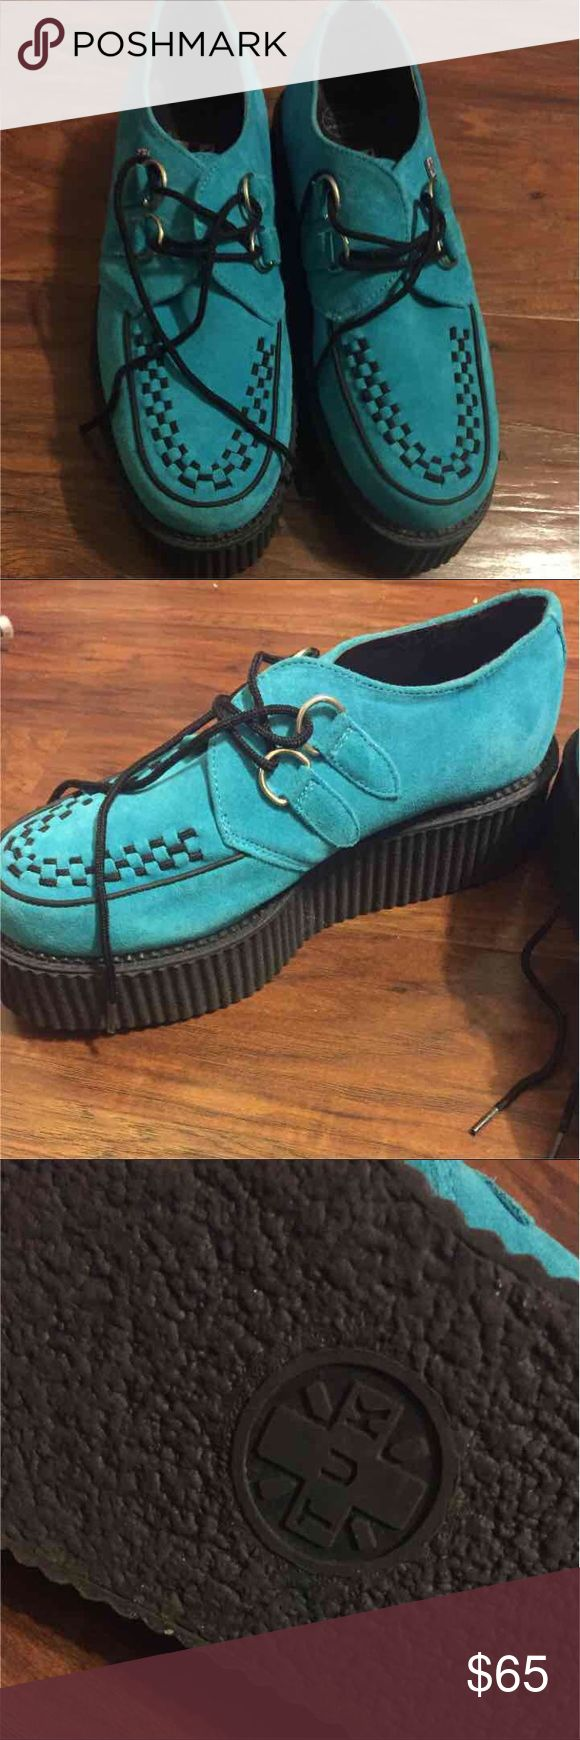 Size 10 Blue Suede Creepers Like new worn twice tuk Shoes Platforms